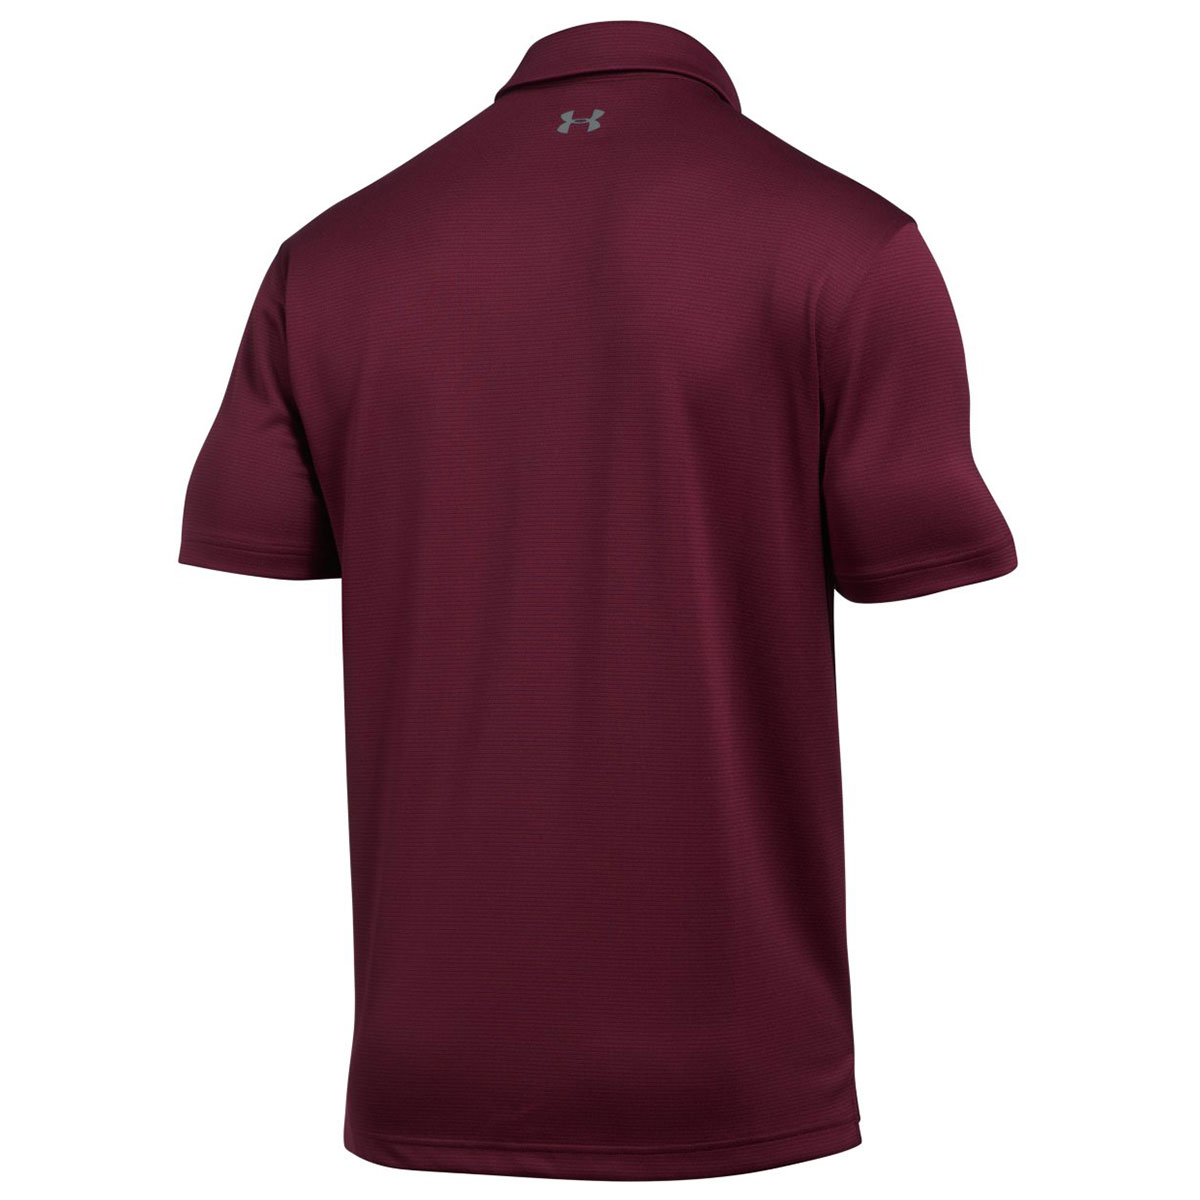 Under-Armour-Mens-Golf-Tech-Wicking-Textured-Soft-Light-Polo-Shirt thumbnail 49